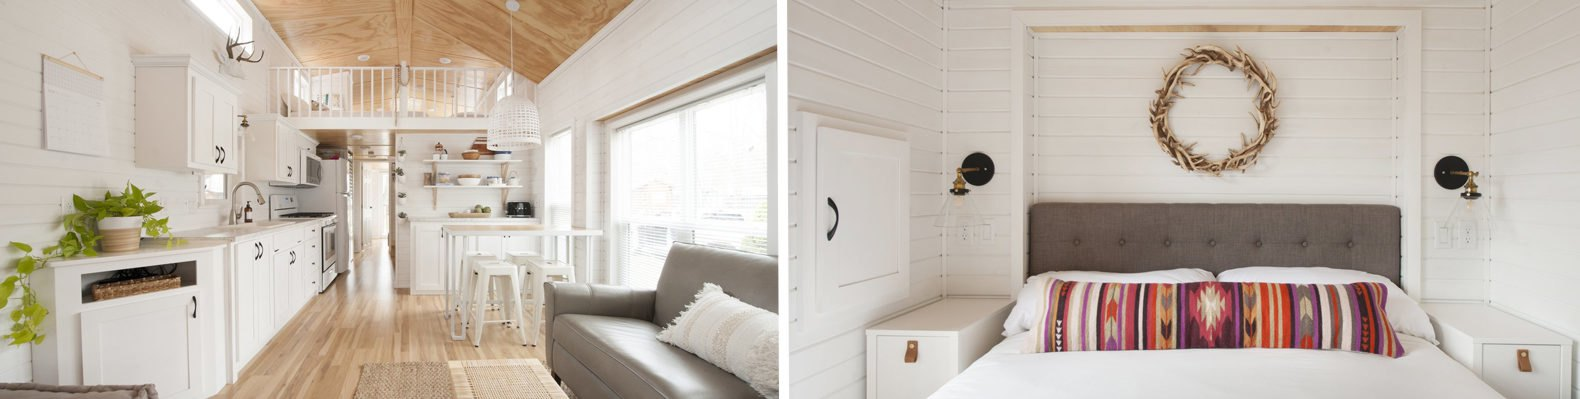 On the left, living room and kitchen with light wood floors, white walls and white cabinetry. On the right, master bedroom with light walls, white bedding and a brightly-colored, patterned throw pillow